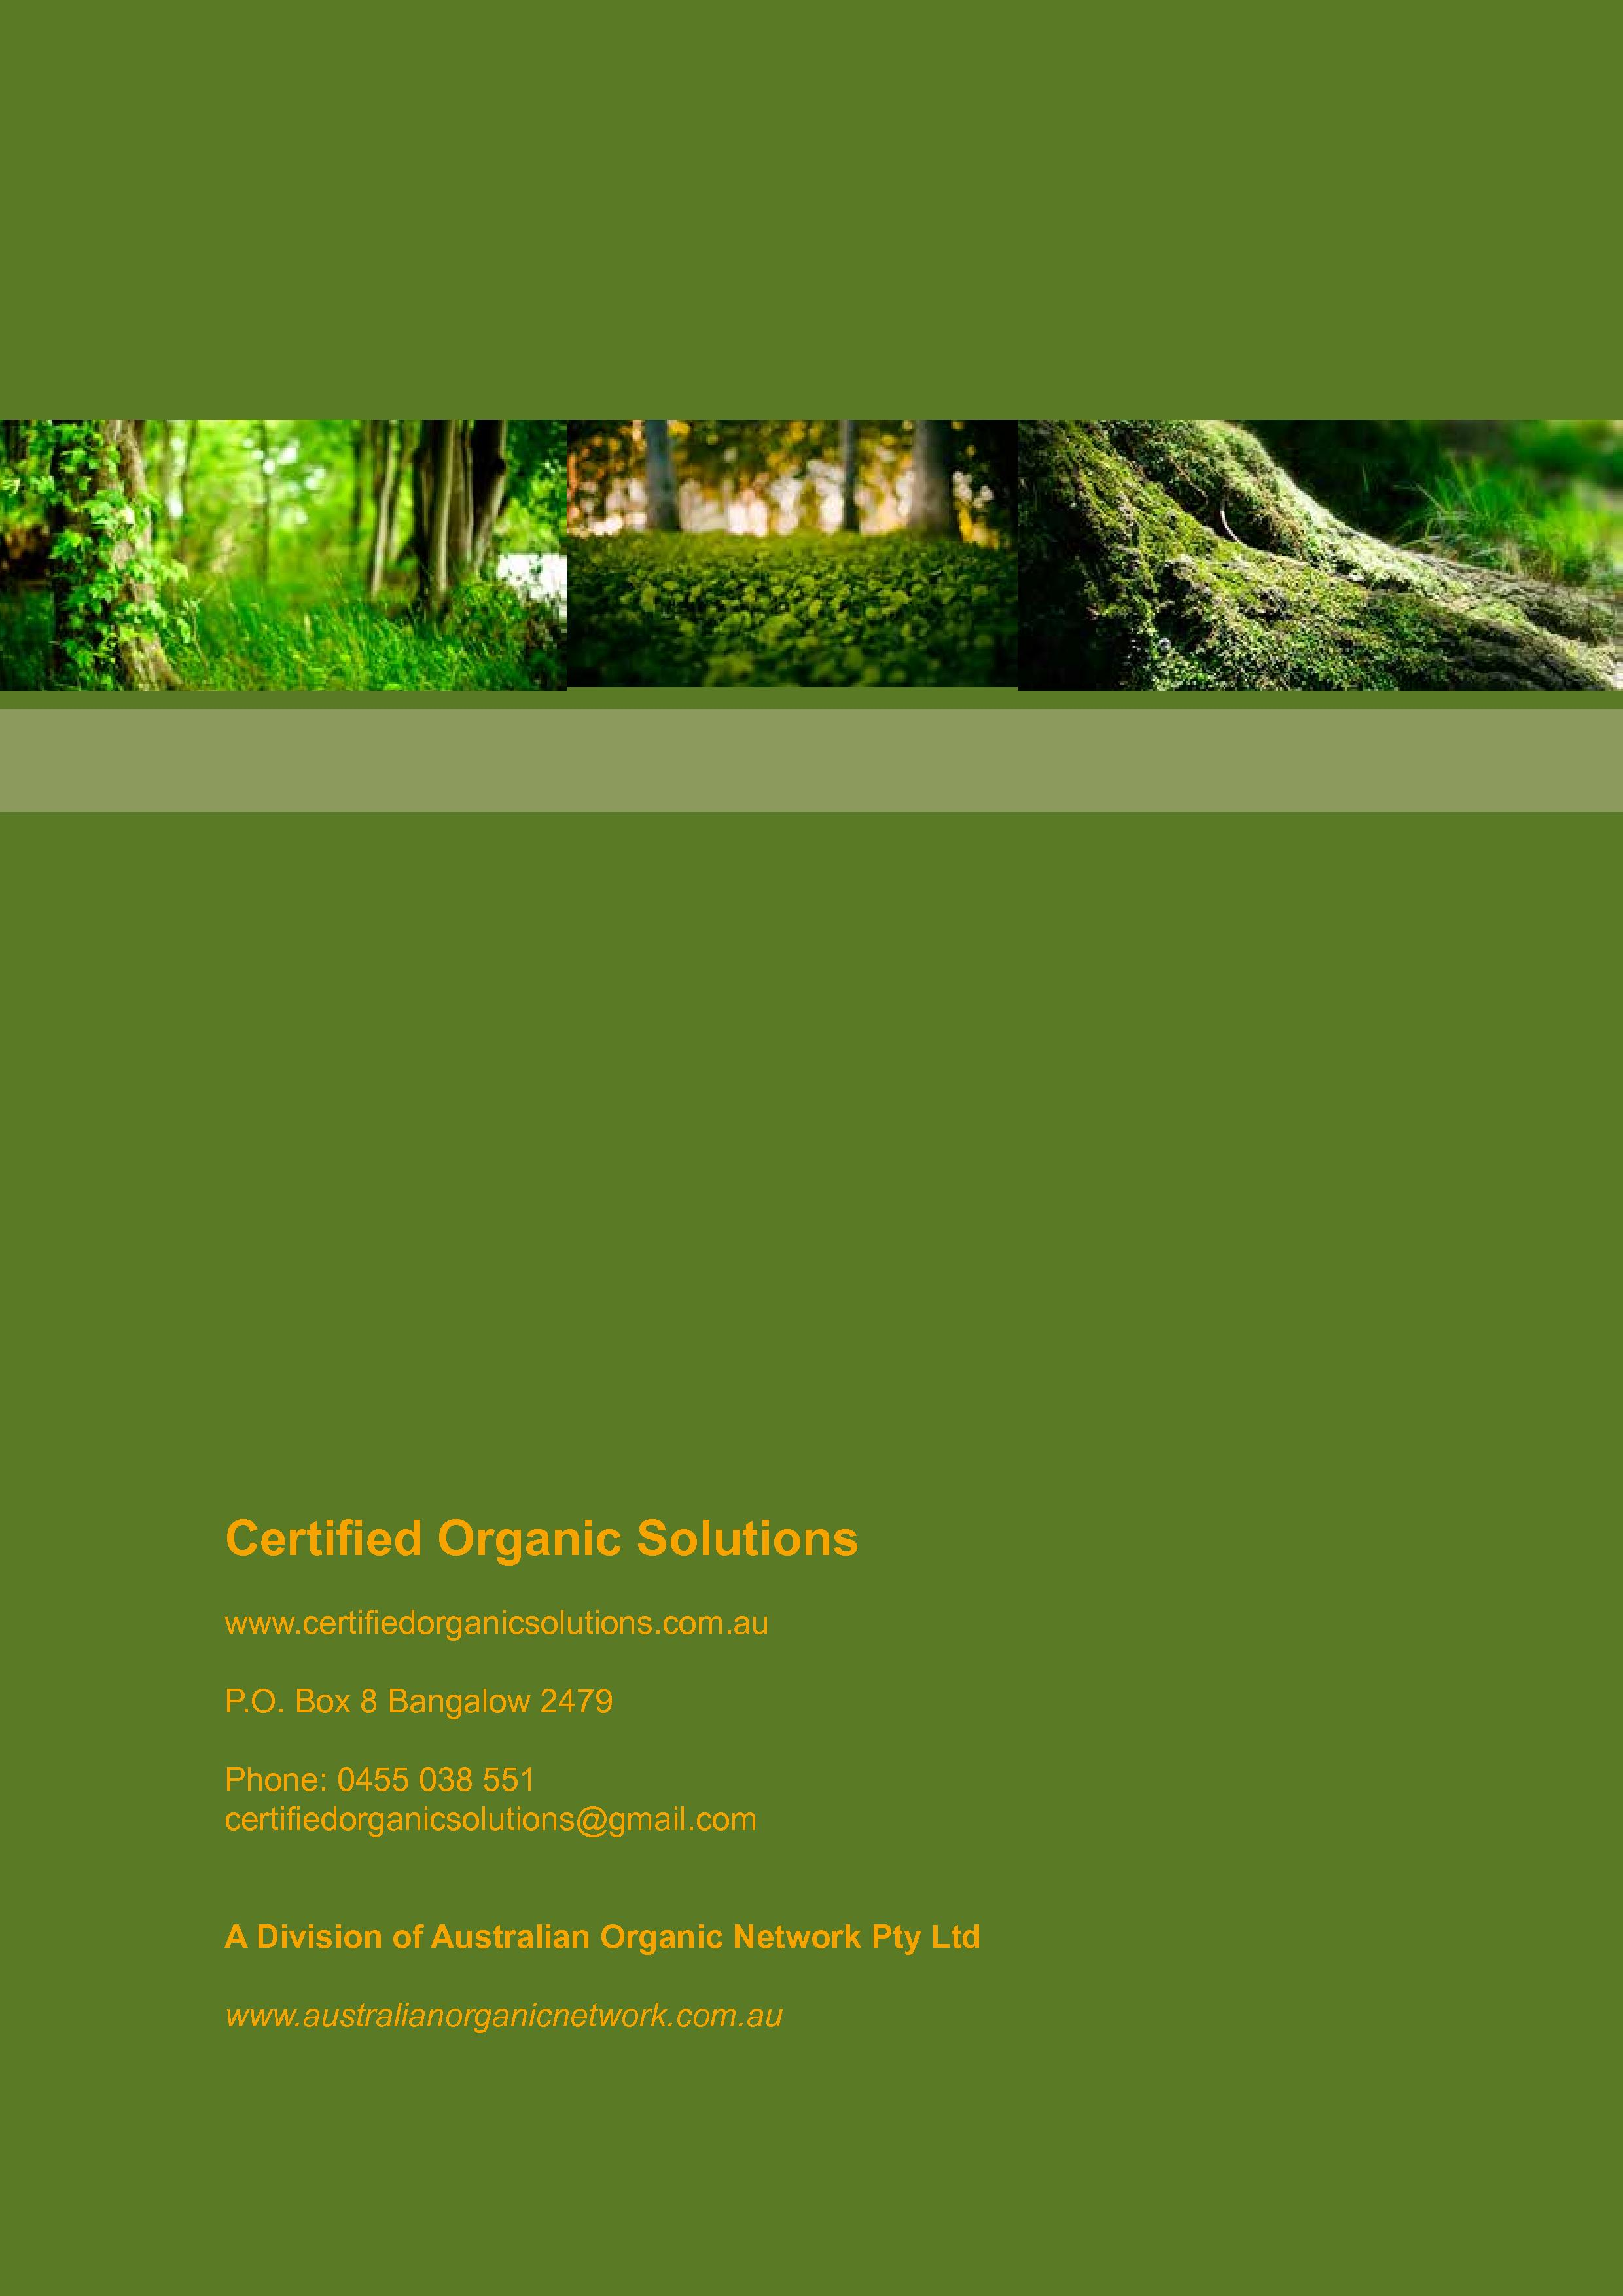 Certified Organic Solutions Kerbside Certified Green Waste 008